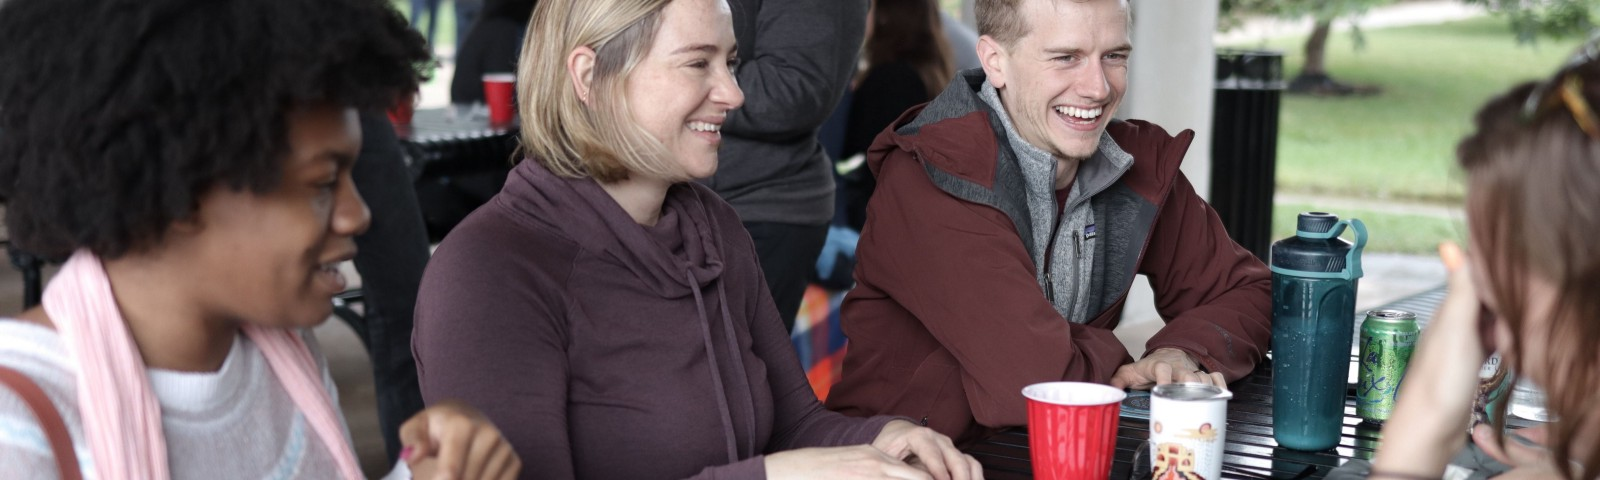 Three people site at a metal picnic table. There are cards on the table and they are smiling about to play a game.